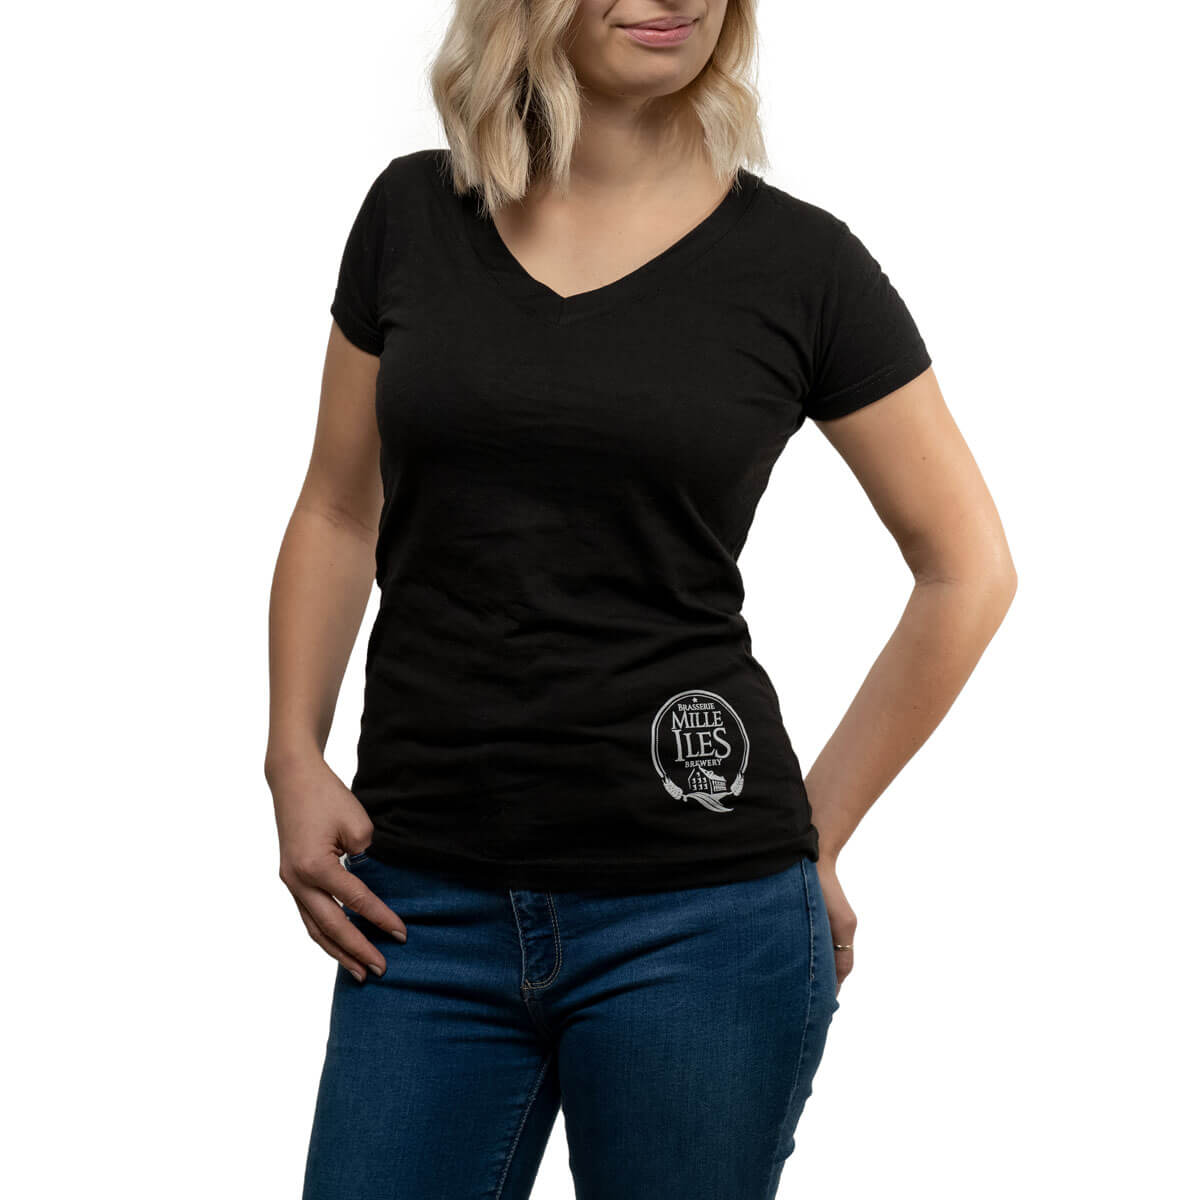 Mille-iles Brewery Women's T-shirt